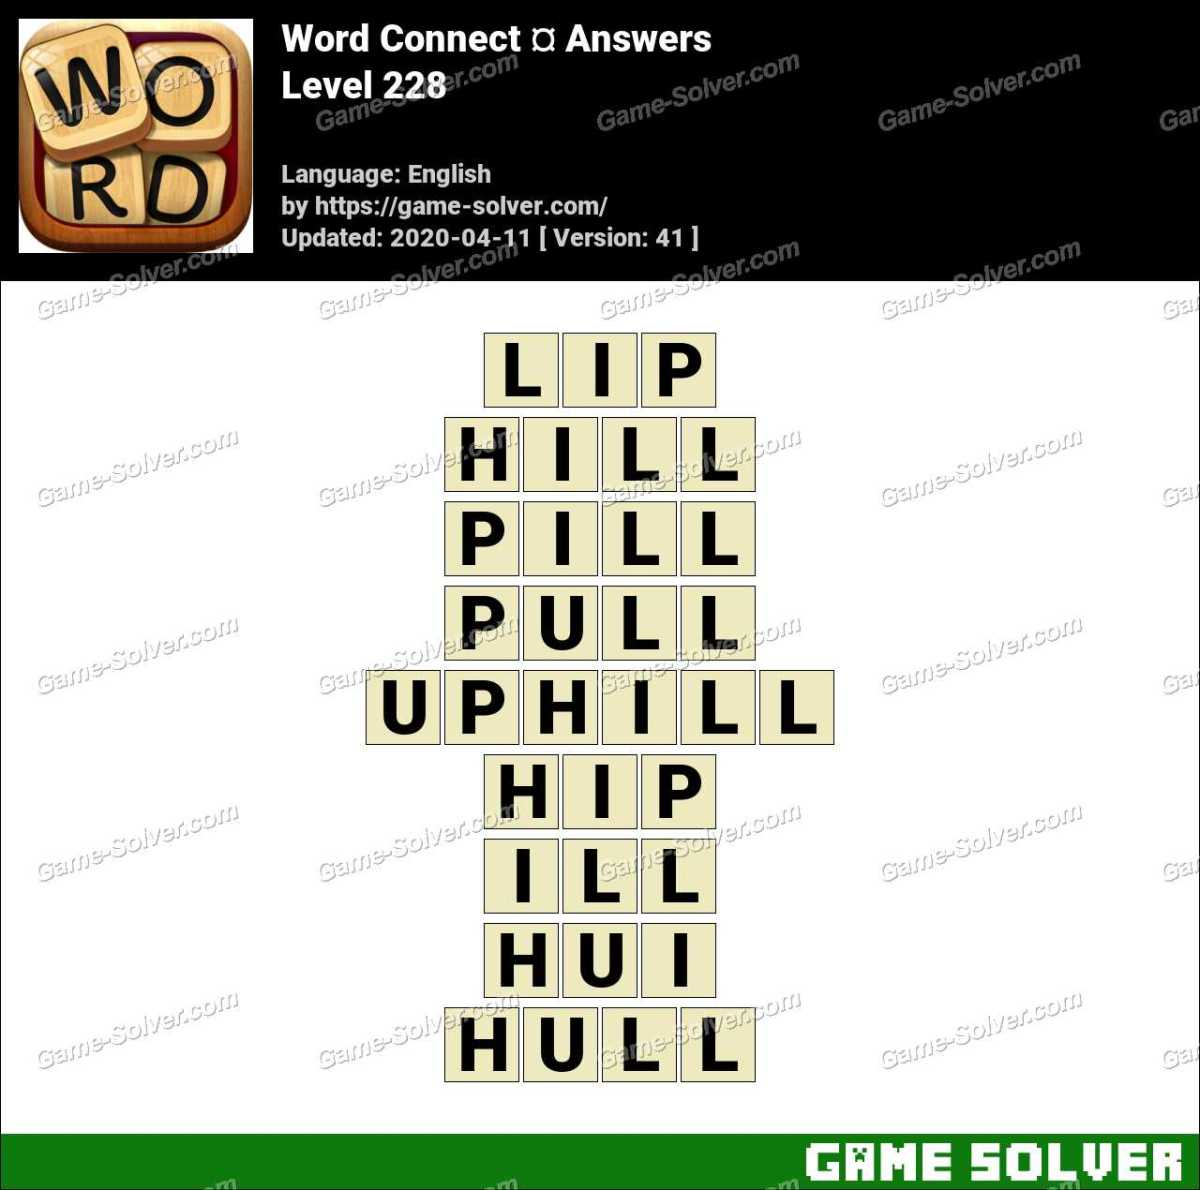 Word Connect Level 228 Answers